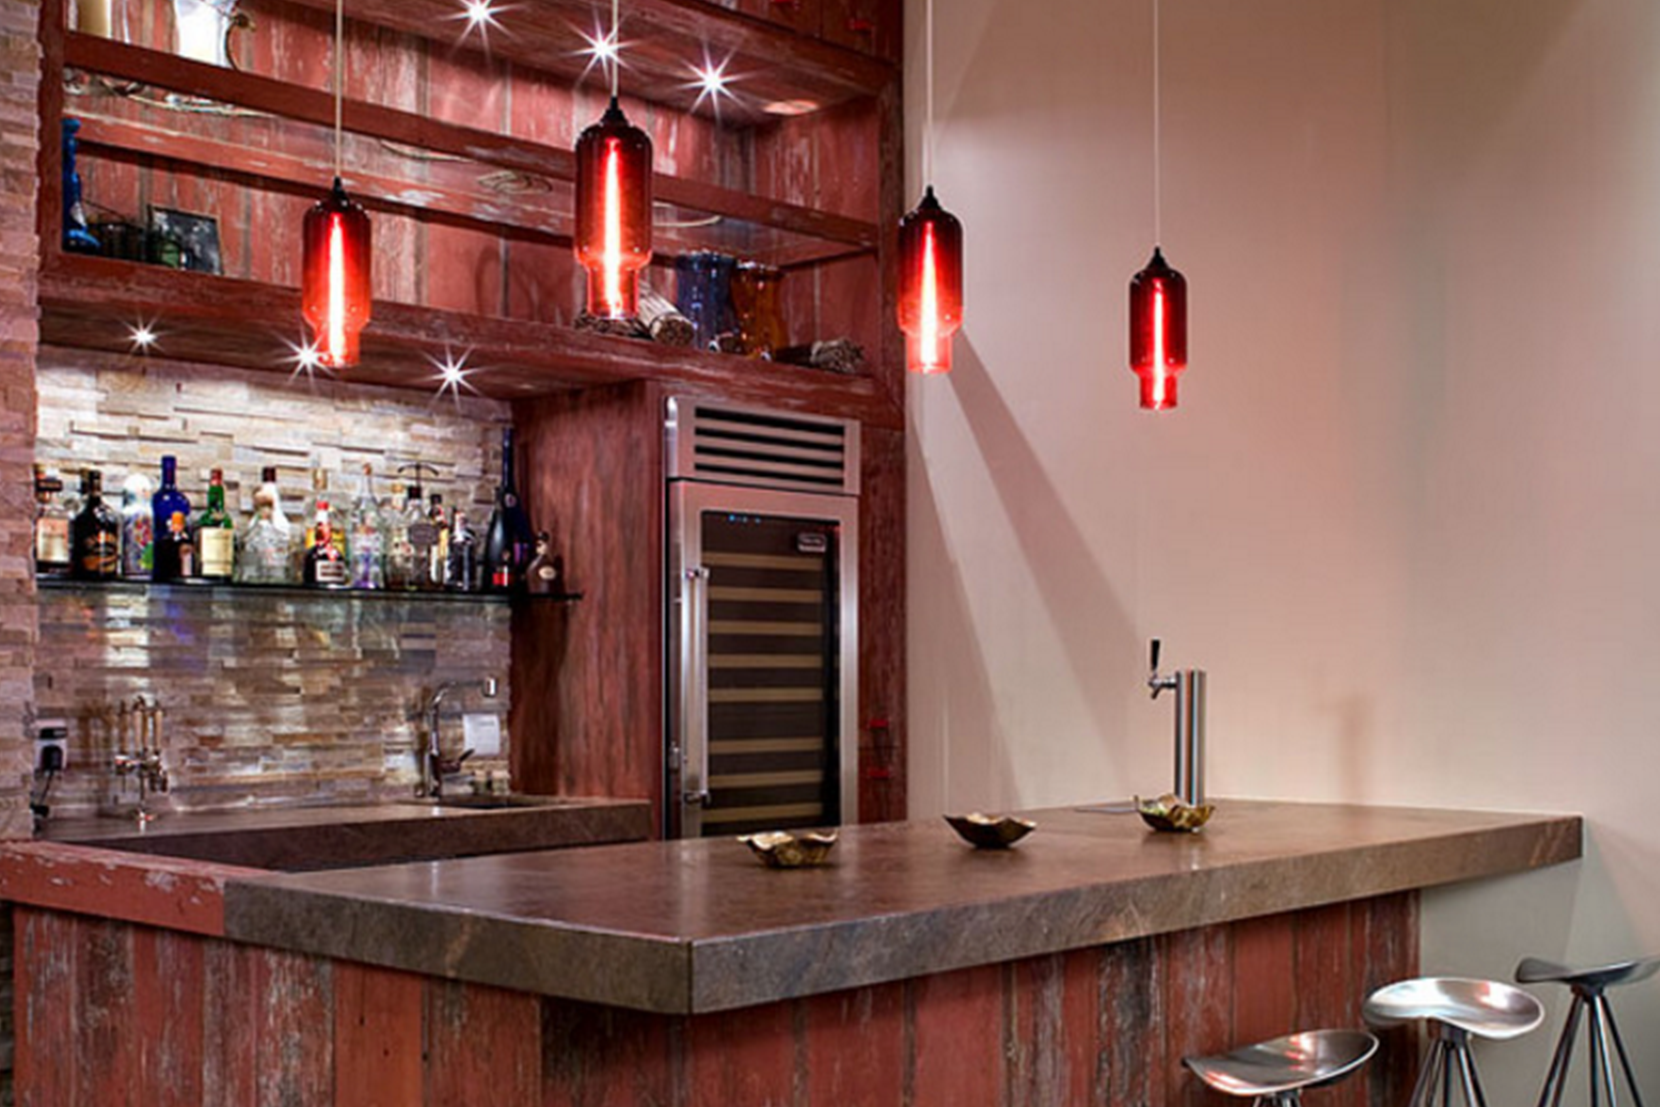 Lighting-Project-Pages_0001s_0005_Bar-Modern-Pendant-Lighting.png